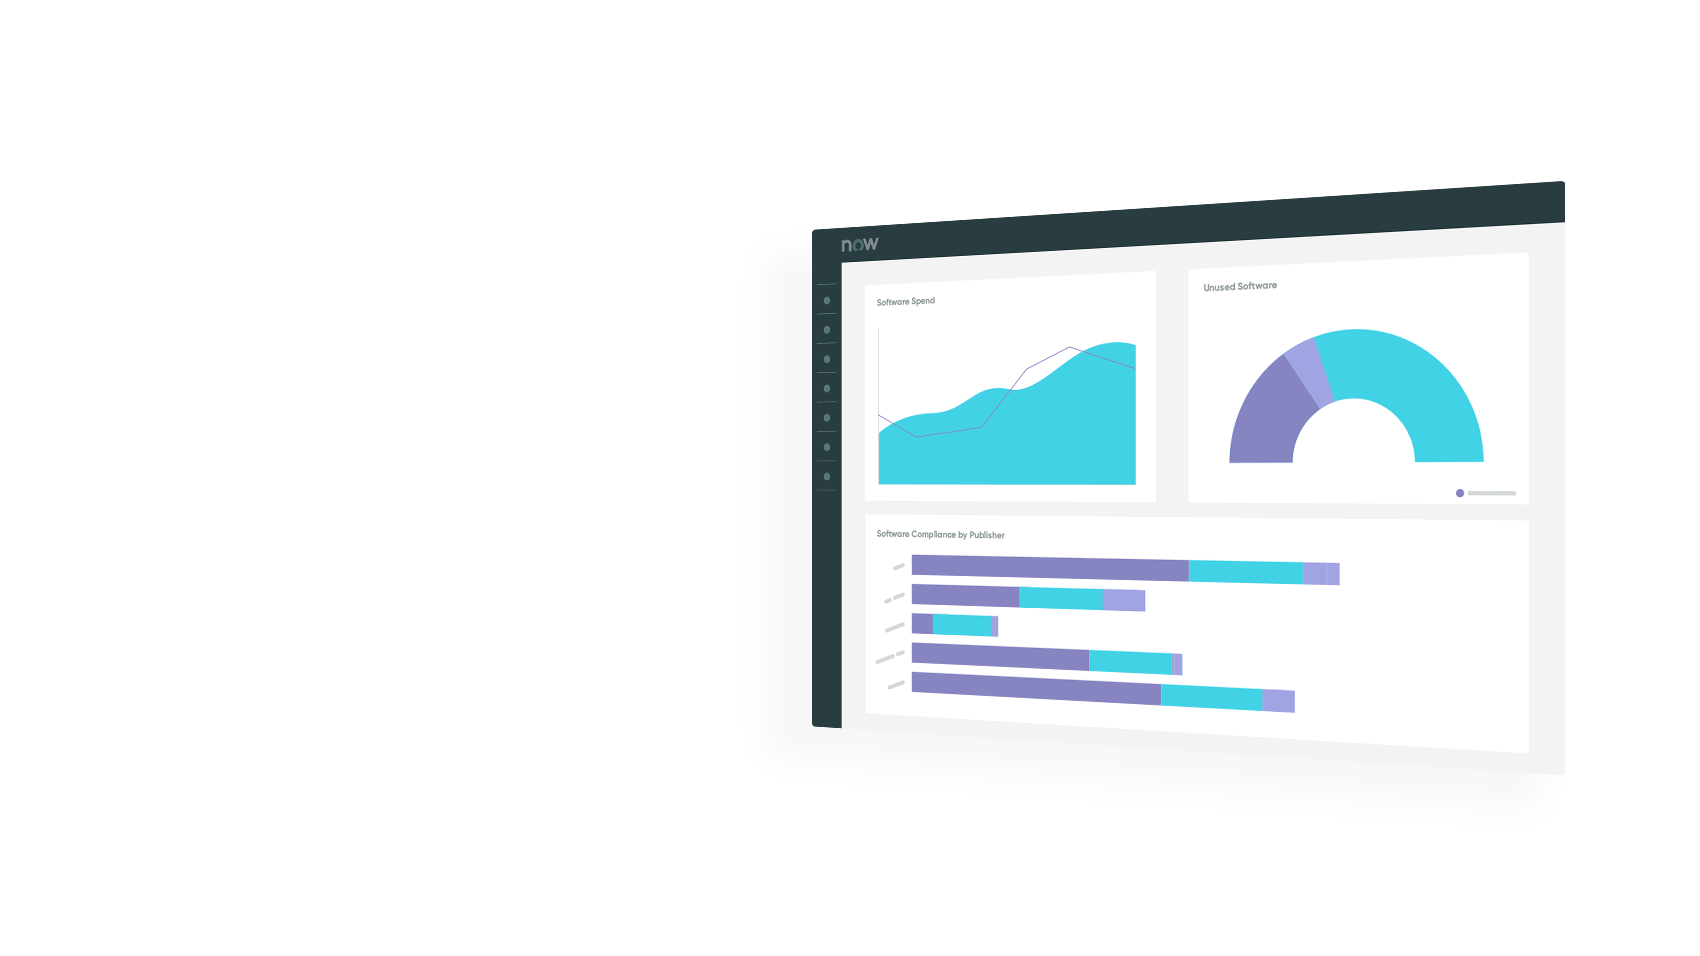 Use ServiceNow IT Asset Management dashboards to manage your entire IT asset lifecycle